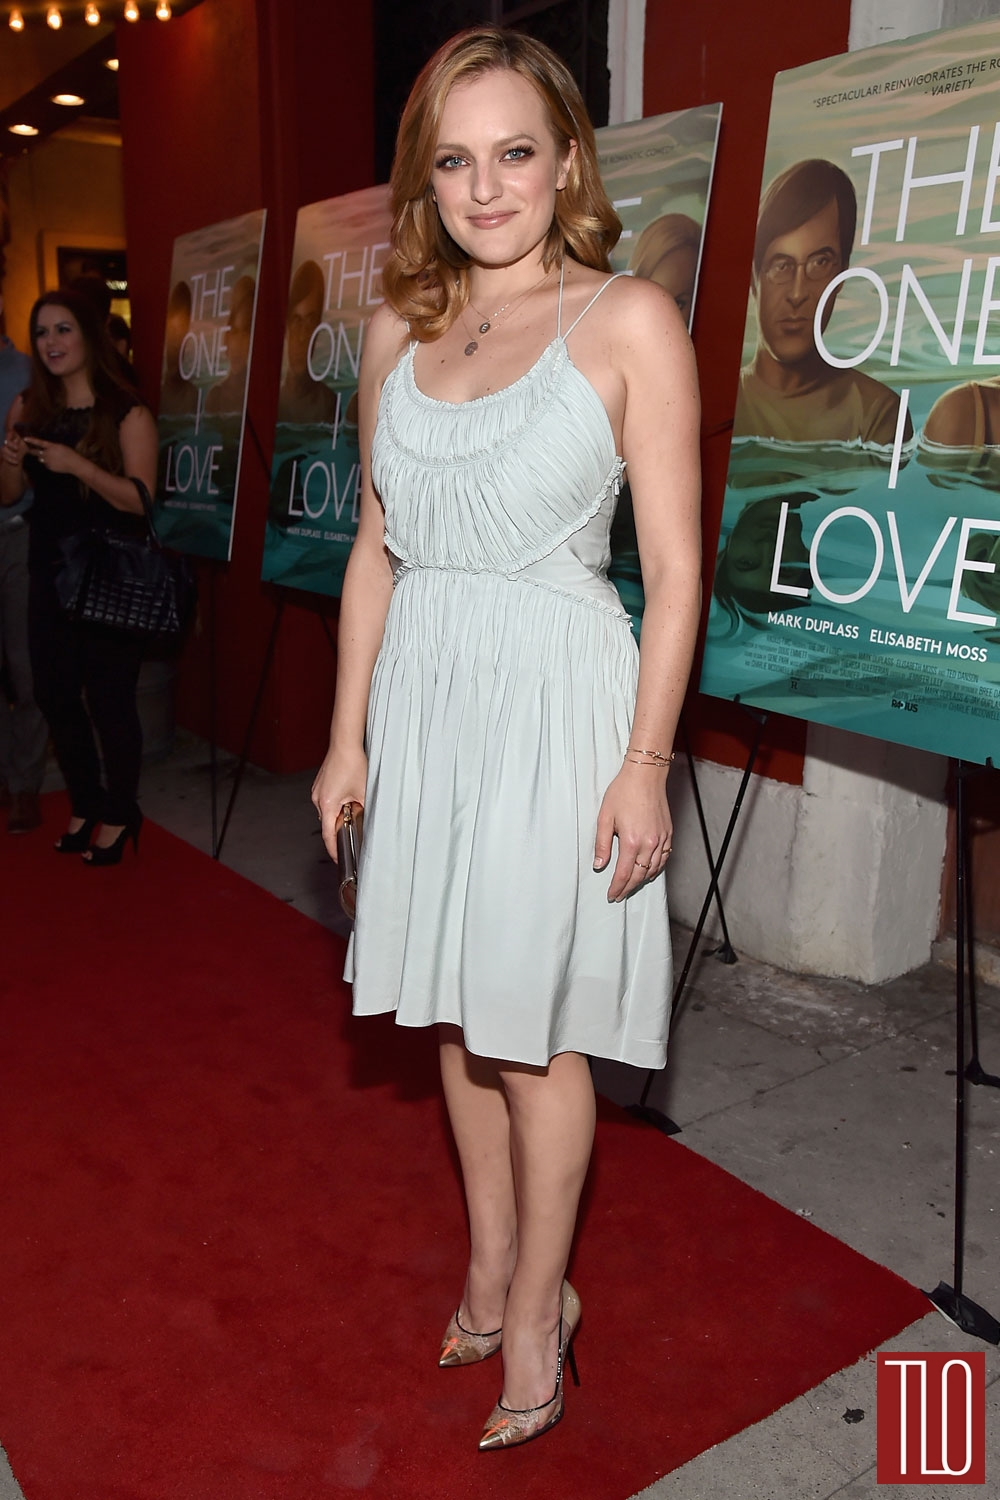 Elisabeth-Moss-The-One-I-Love-Los-Angeles-Movie-Premiere-Chloe-Jimmy-Choo-Red-Carpet-Tom-Lorenzo-Site-TLO (1)